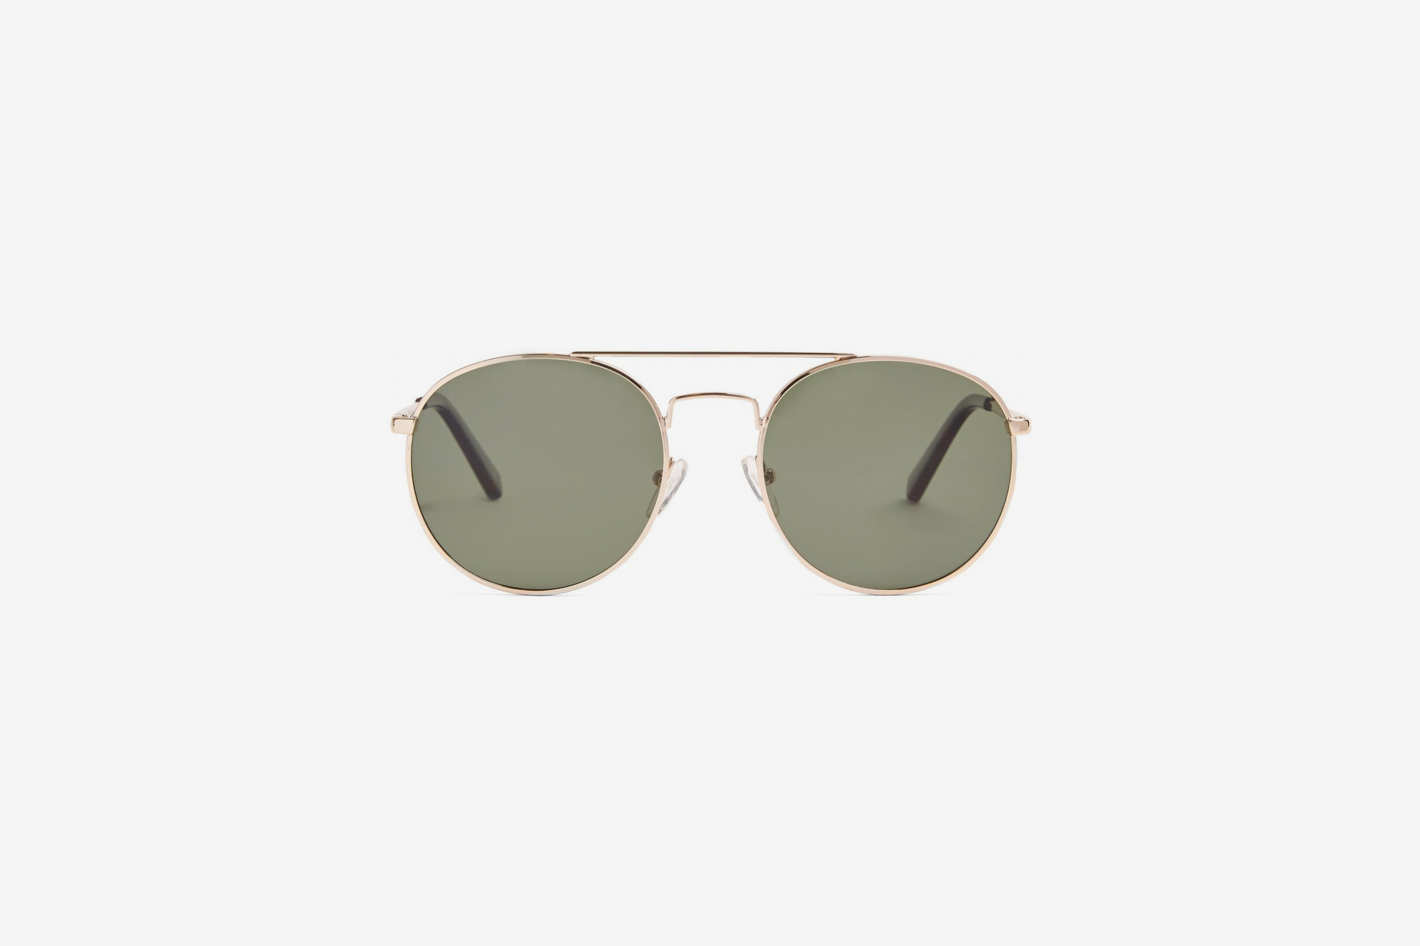 Le Specs Revolution round-frame metal sunglasses